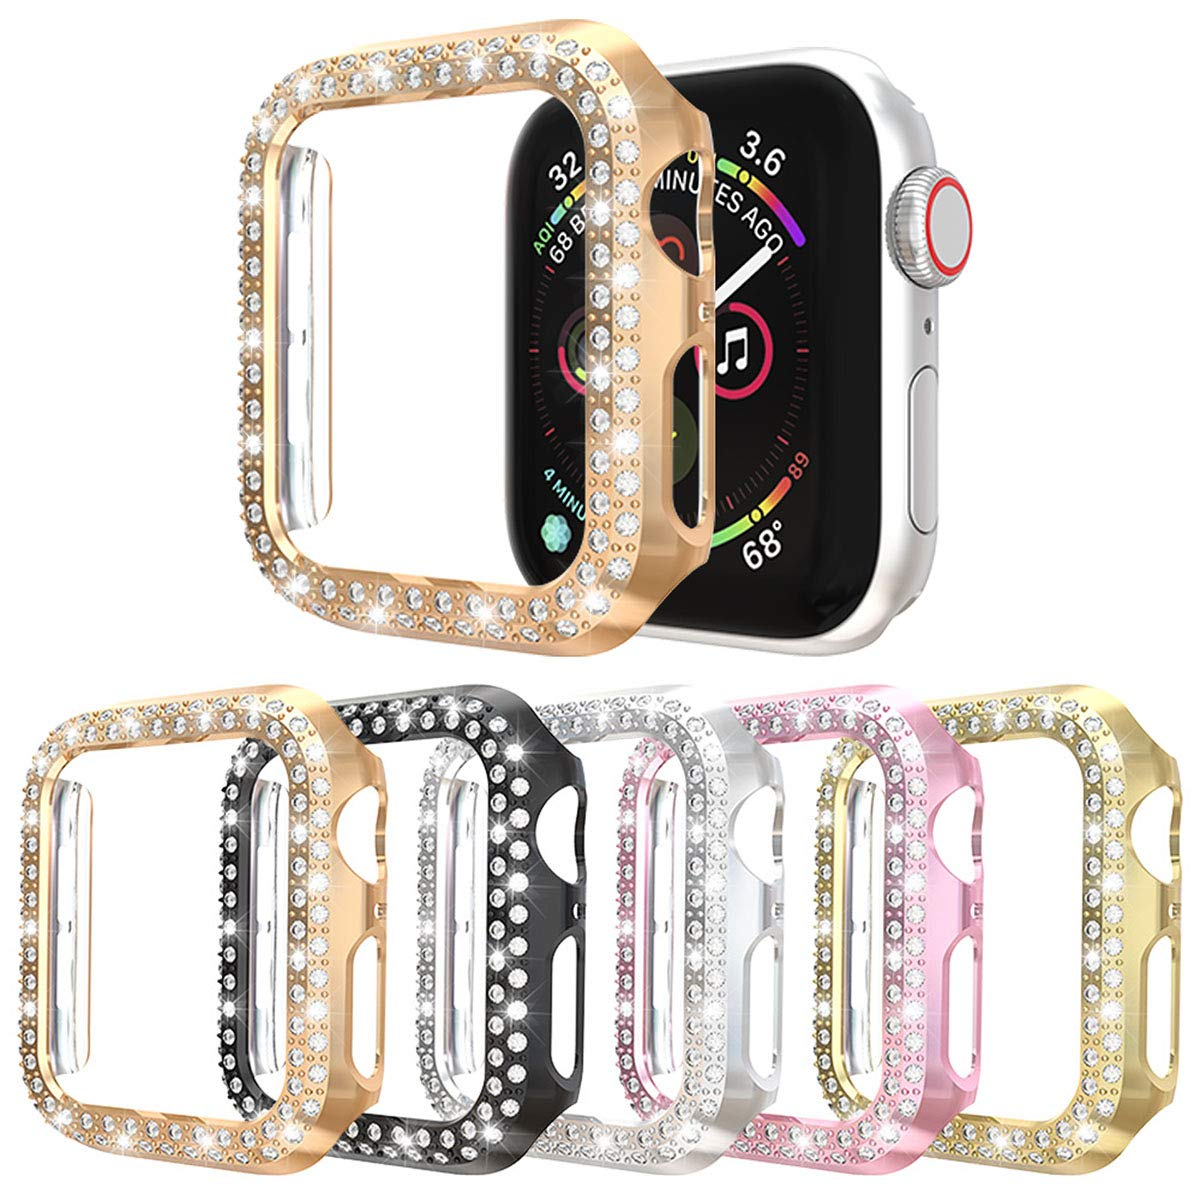 [5-Pack] Case Compatible with Apple Watch Series 4 40mm 44mm Series 3 2 1 38mm 42mm,Double Row Bling Crystal Diamonds PC Plated Cover Protective Bumper (Black+Silver+Pink+Gold+Rose Gold, 44mm) by Richone